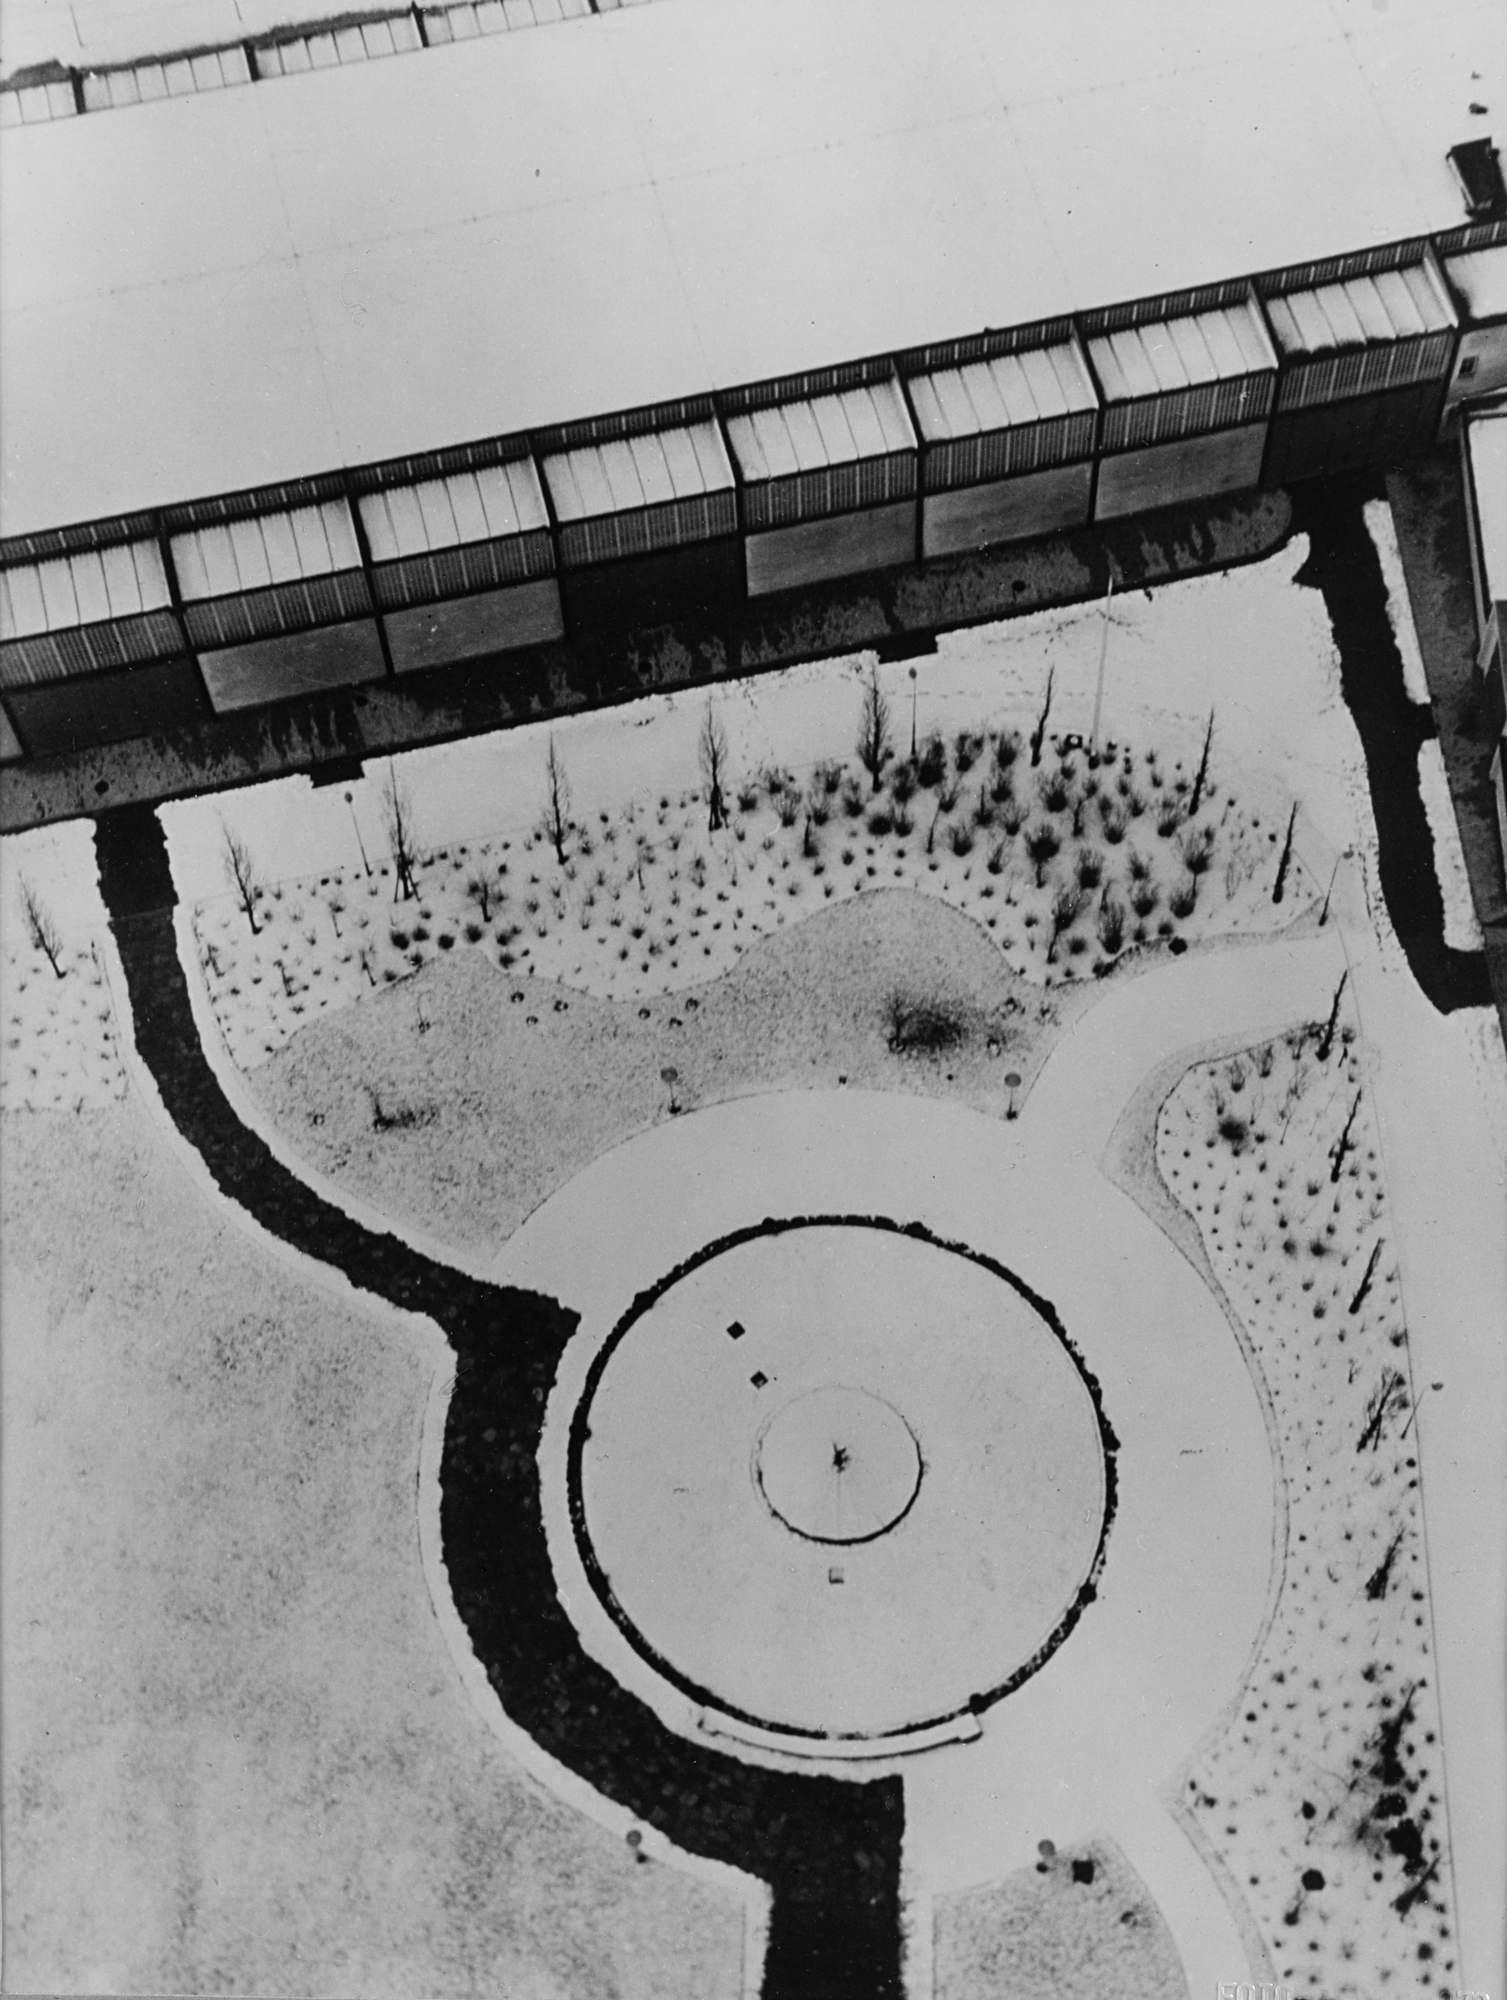 Berlin, from the Radio Tower, 1928